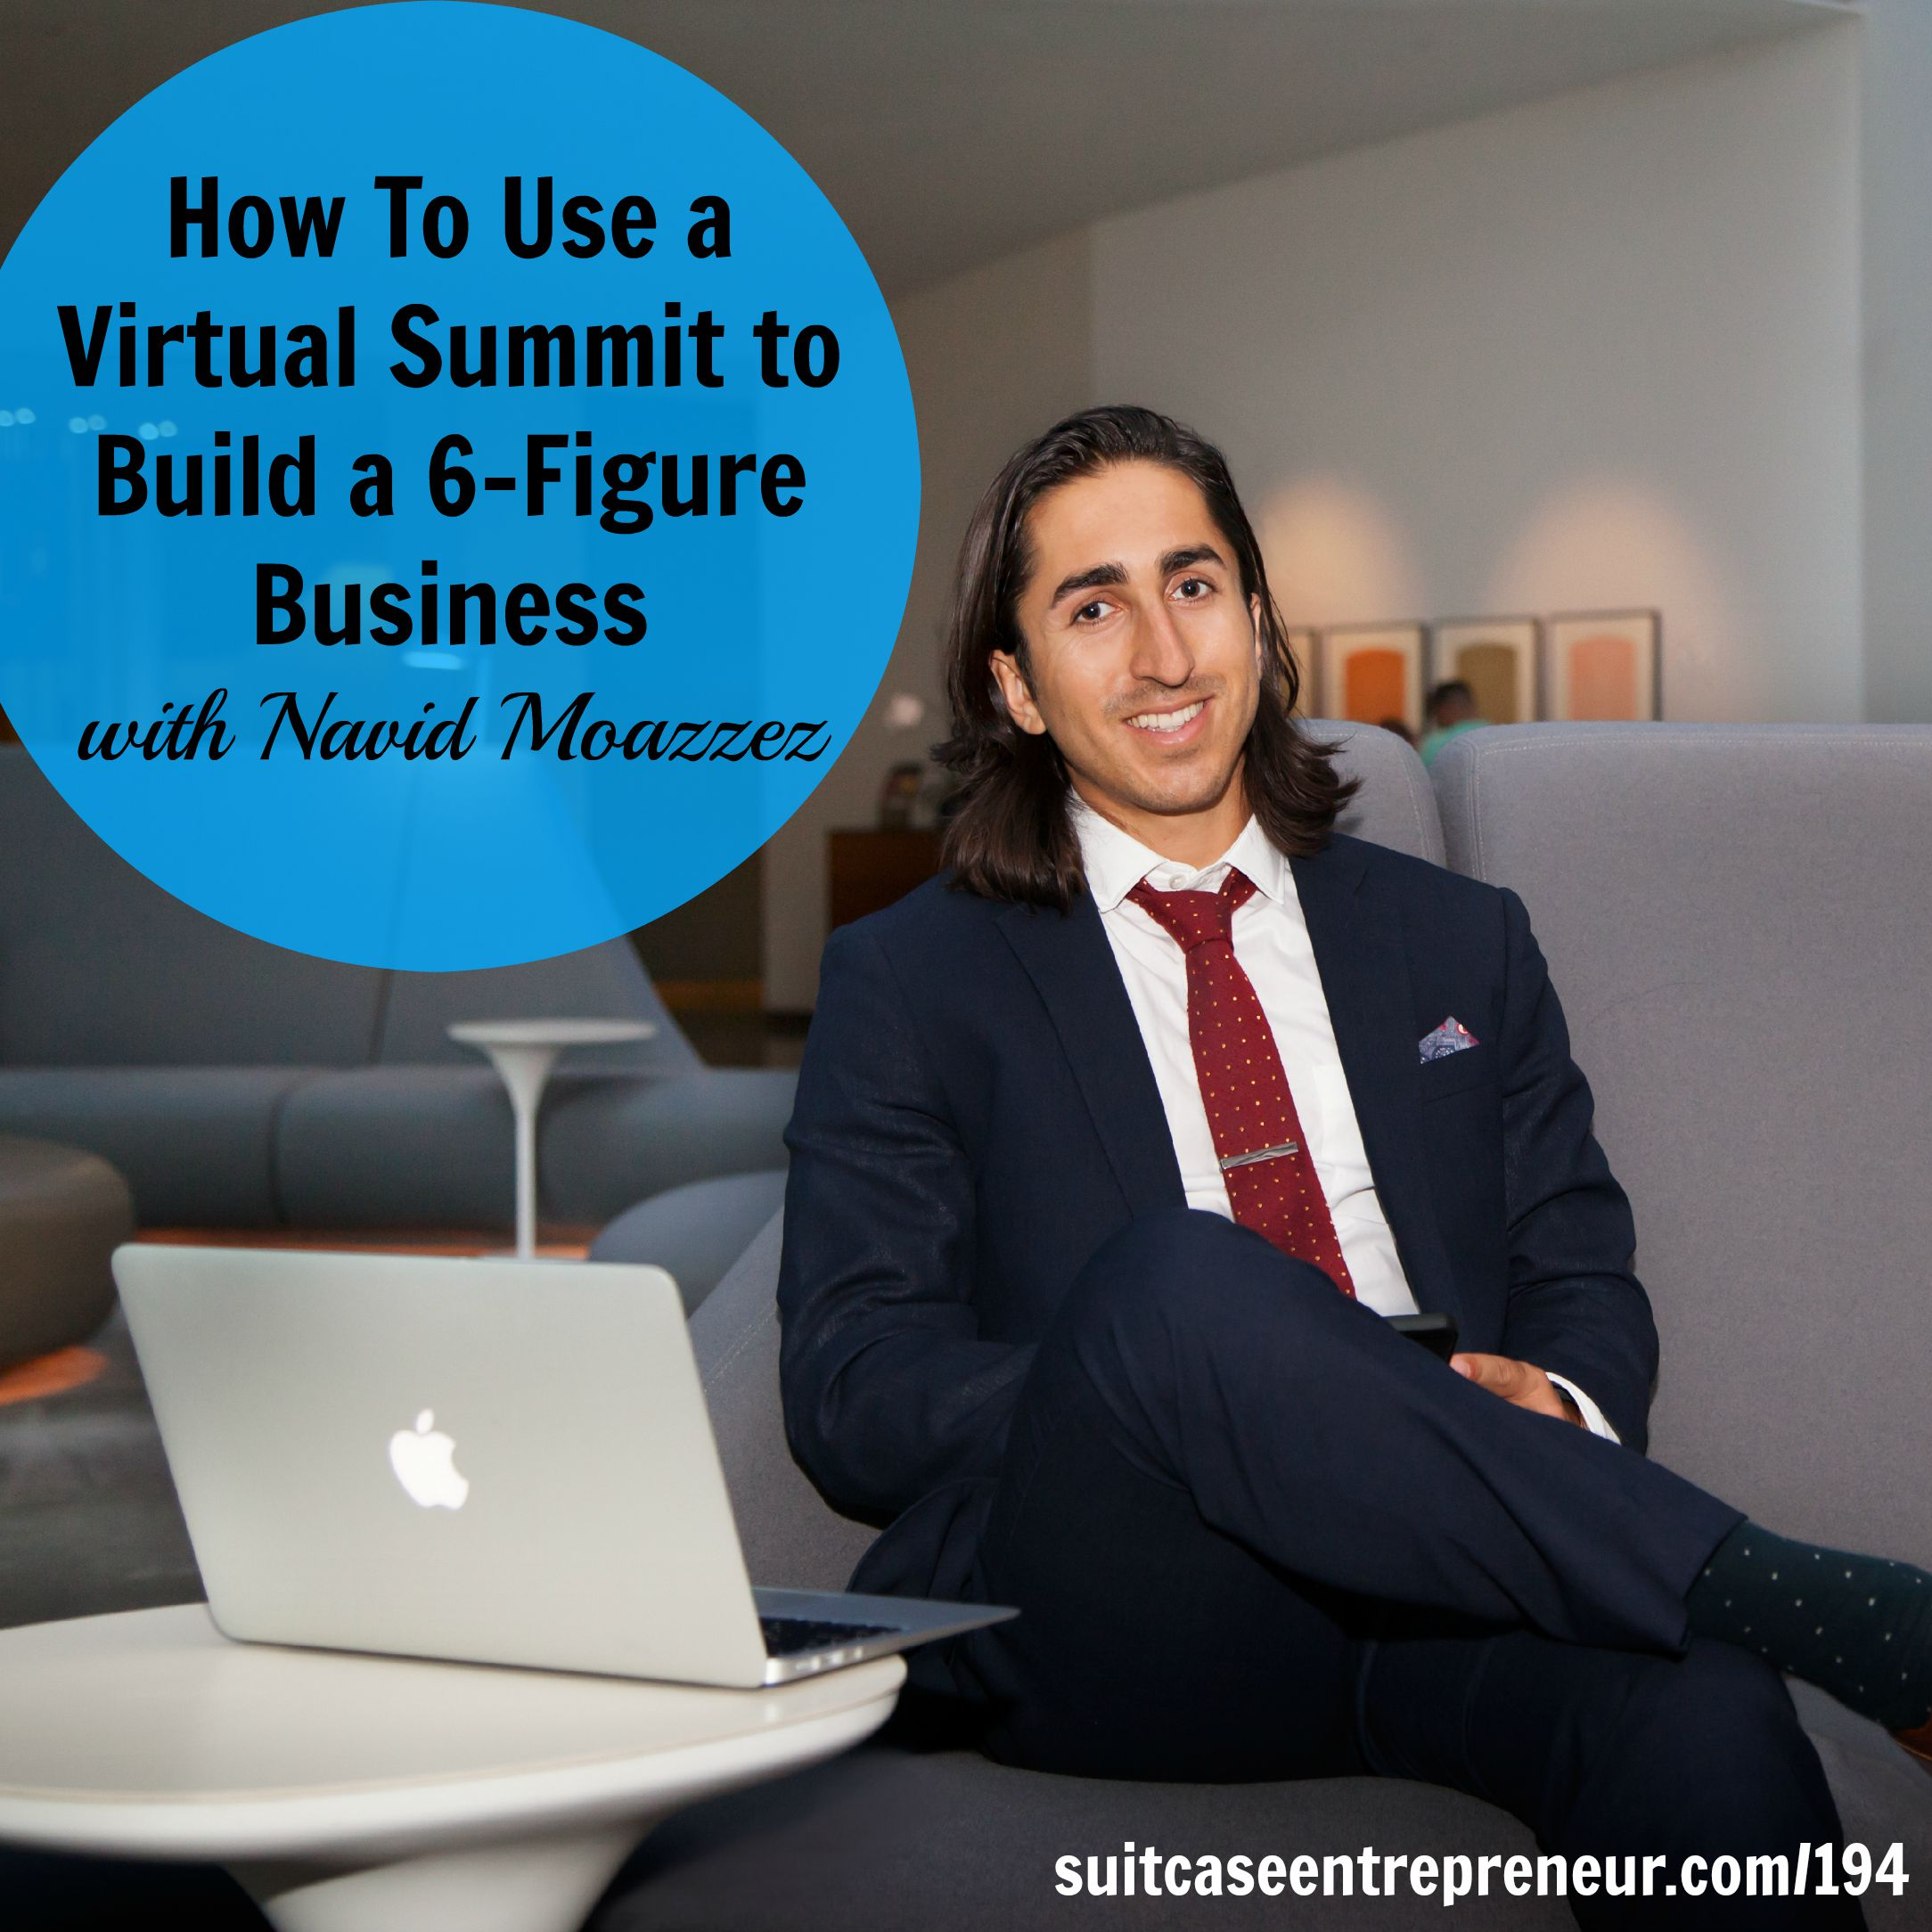 [194] How To Use a Virtual Summit to Build a 6-Figure Business with Navid Moazzez